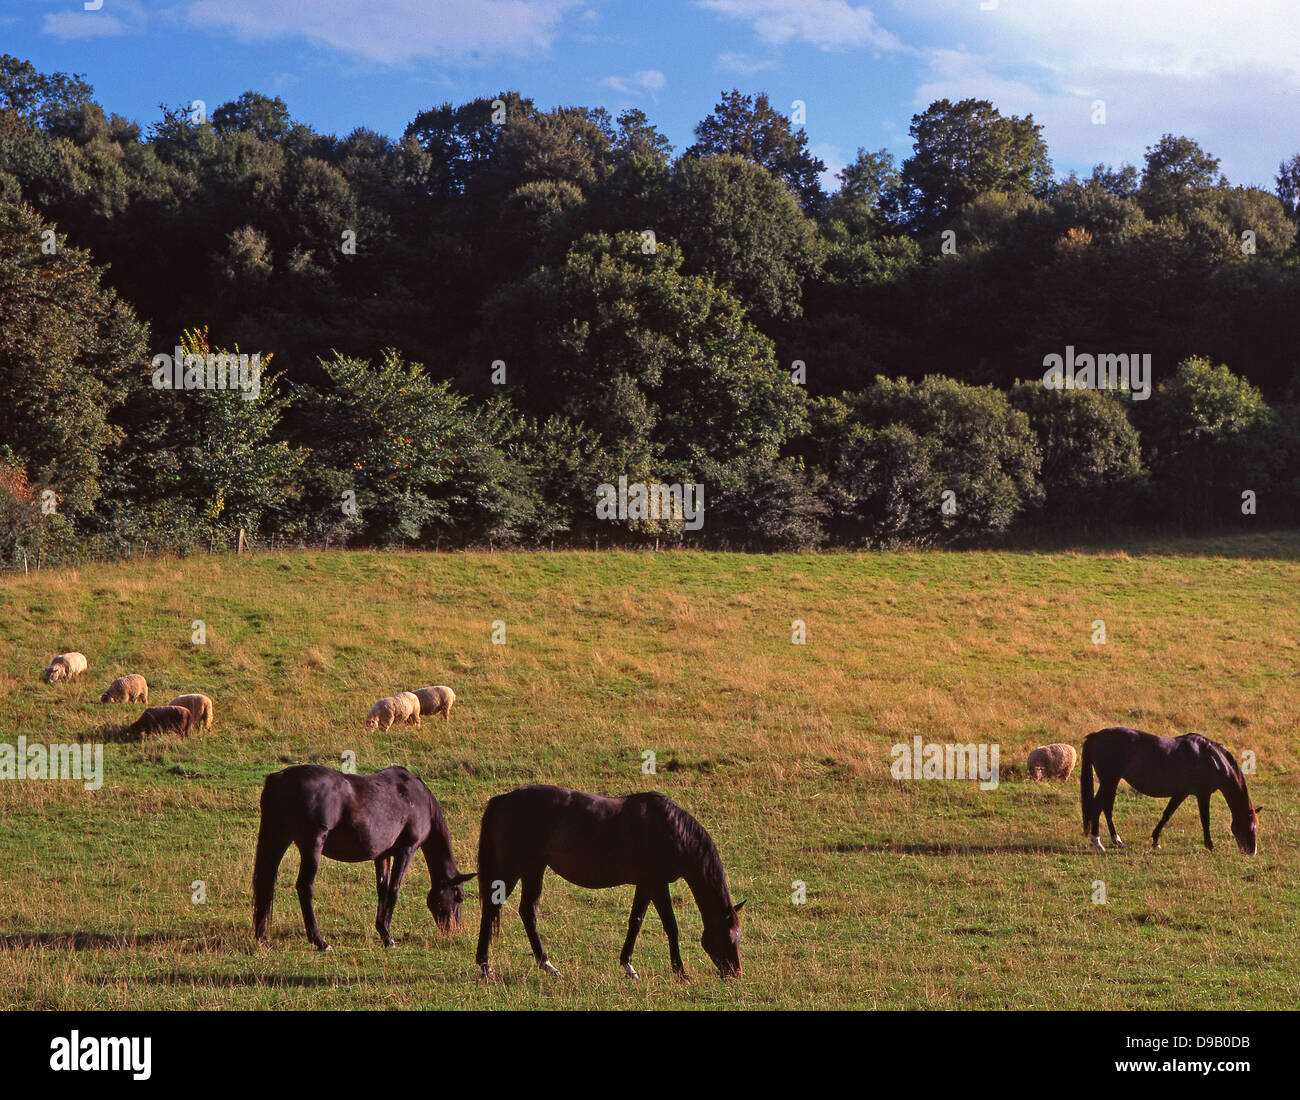 A picturesque, tranquil scene of horses and sheep grazing in open pastureland, Devon, England, UK. - Stock Image